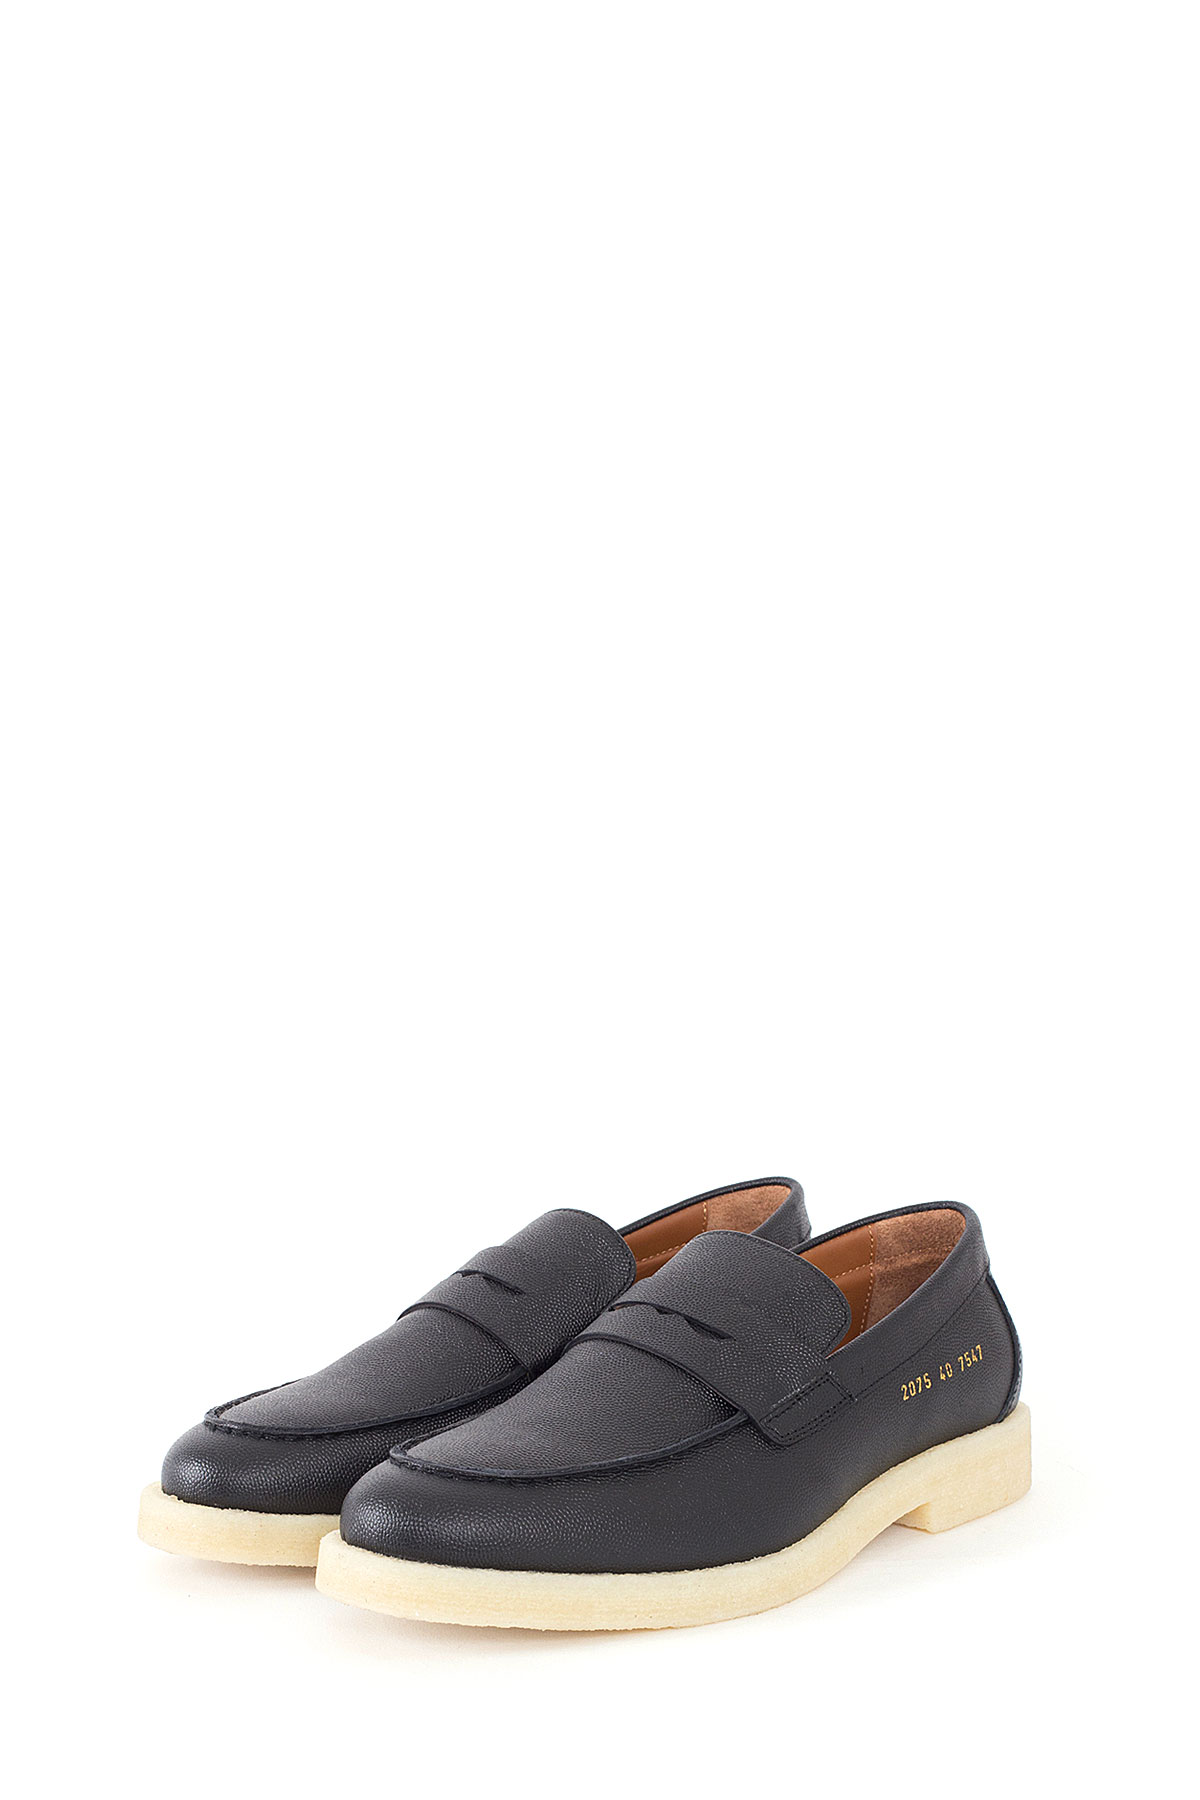 Common Projects : Pebble Grain Leather Penny Loafers (Black)